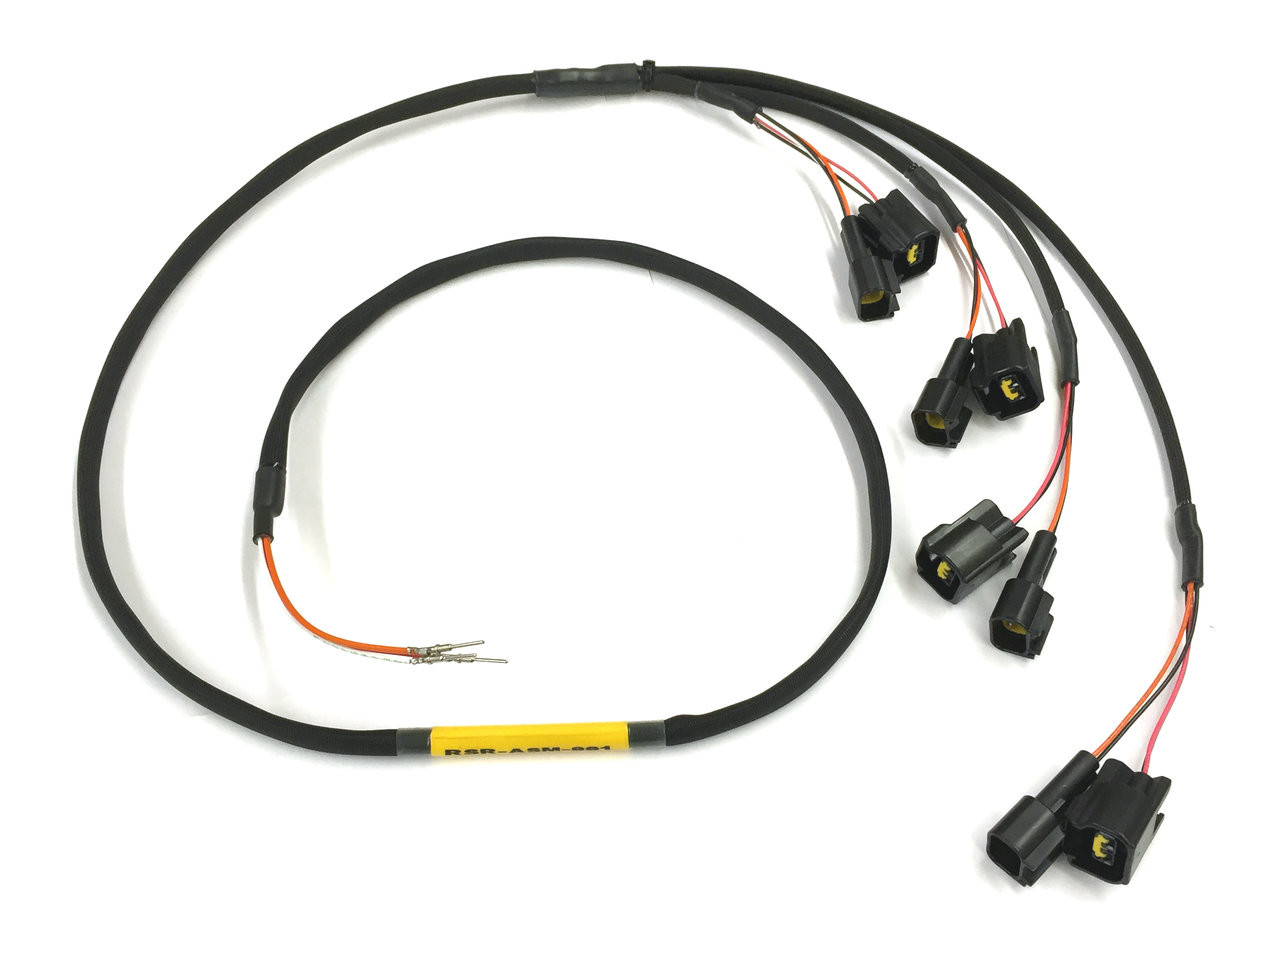 RSR ASM Ignition Coil Kill Wiring Harness Ignition Module Wire Harness on wiring harness, harley ignition module harness, ignition switch harness, ignition module coil, ignition control module harness 4.1l, rx-8 ignition coil wire harness, ignition system diagram, q45 ignition coil wire harness,